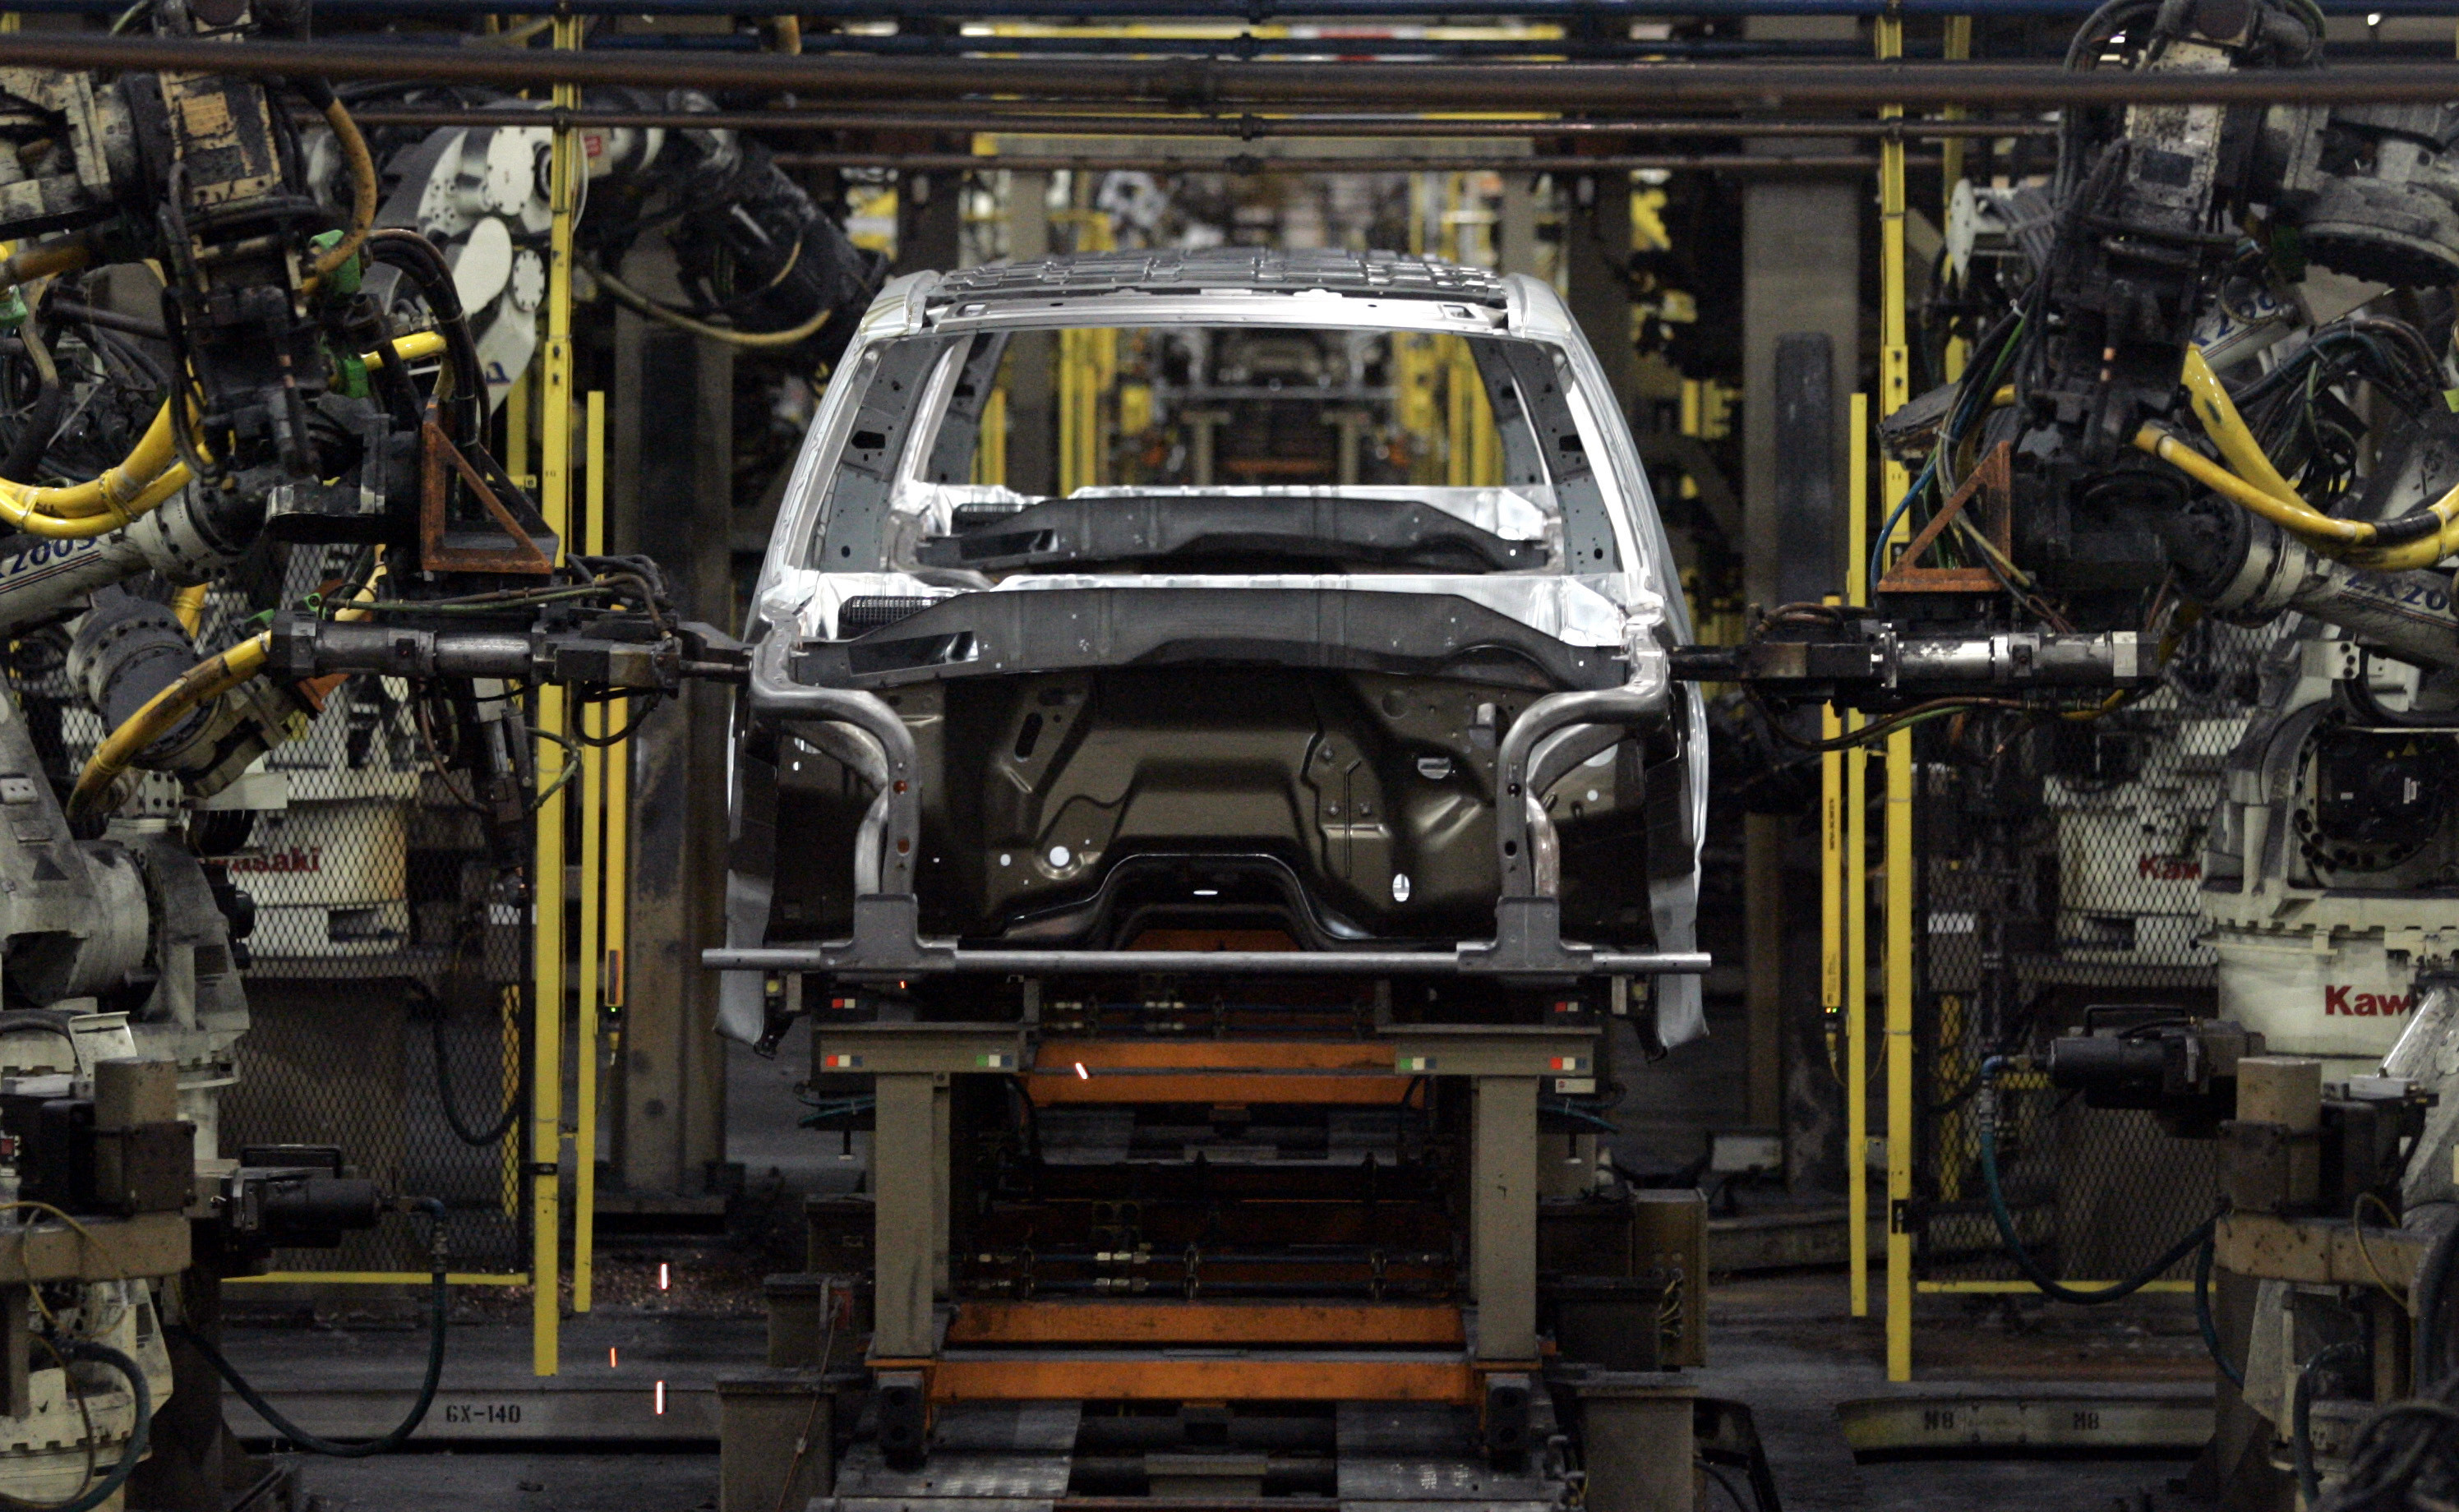 robots work on Ford Expedition and Lincoln Navigator SUV frames on the assembly line at Ford Motor Michigan Truck Plant in Wayne, Michigan